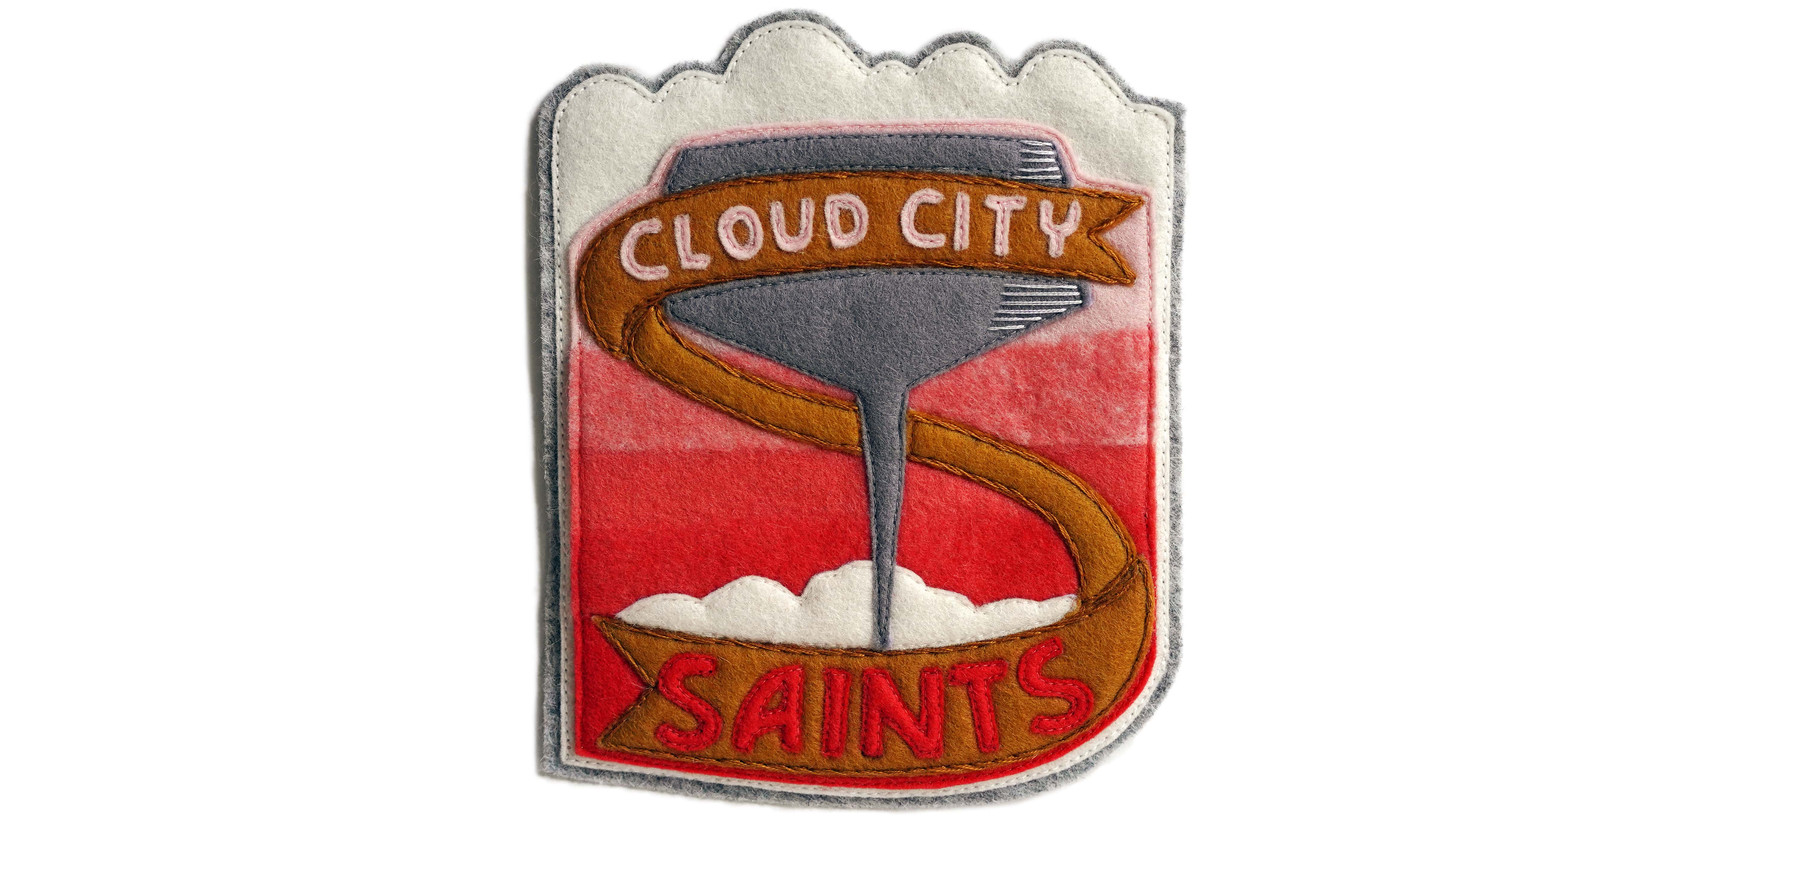 Cloud City Saints